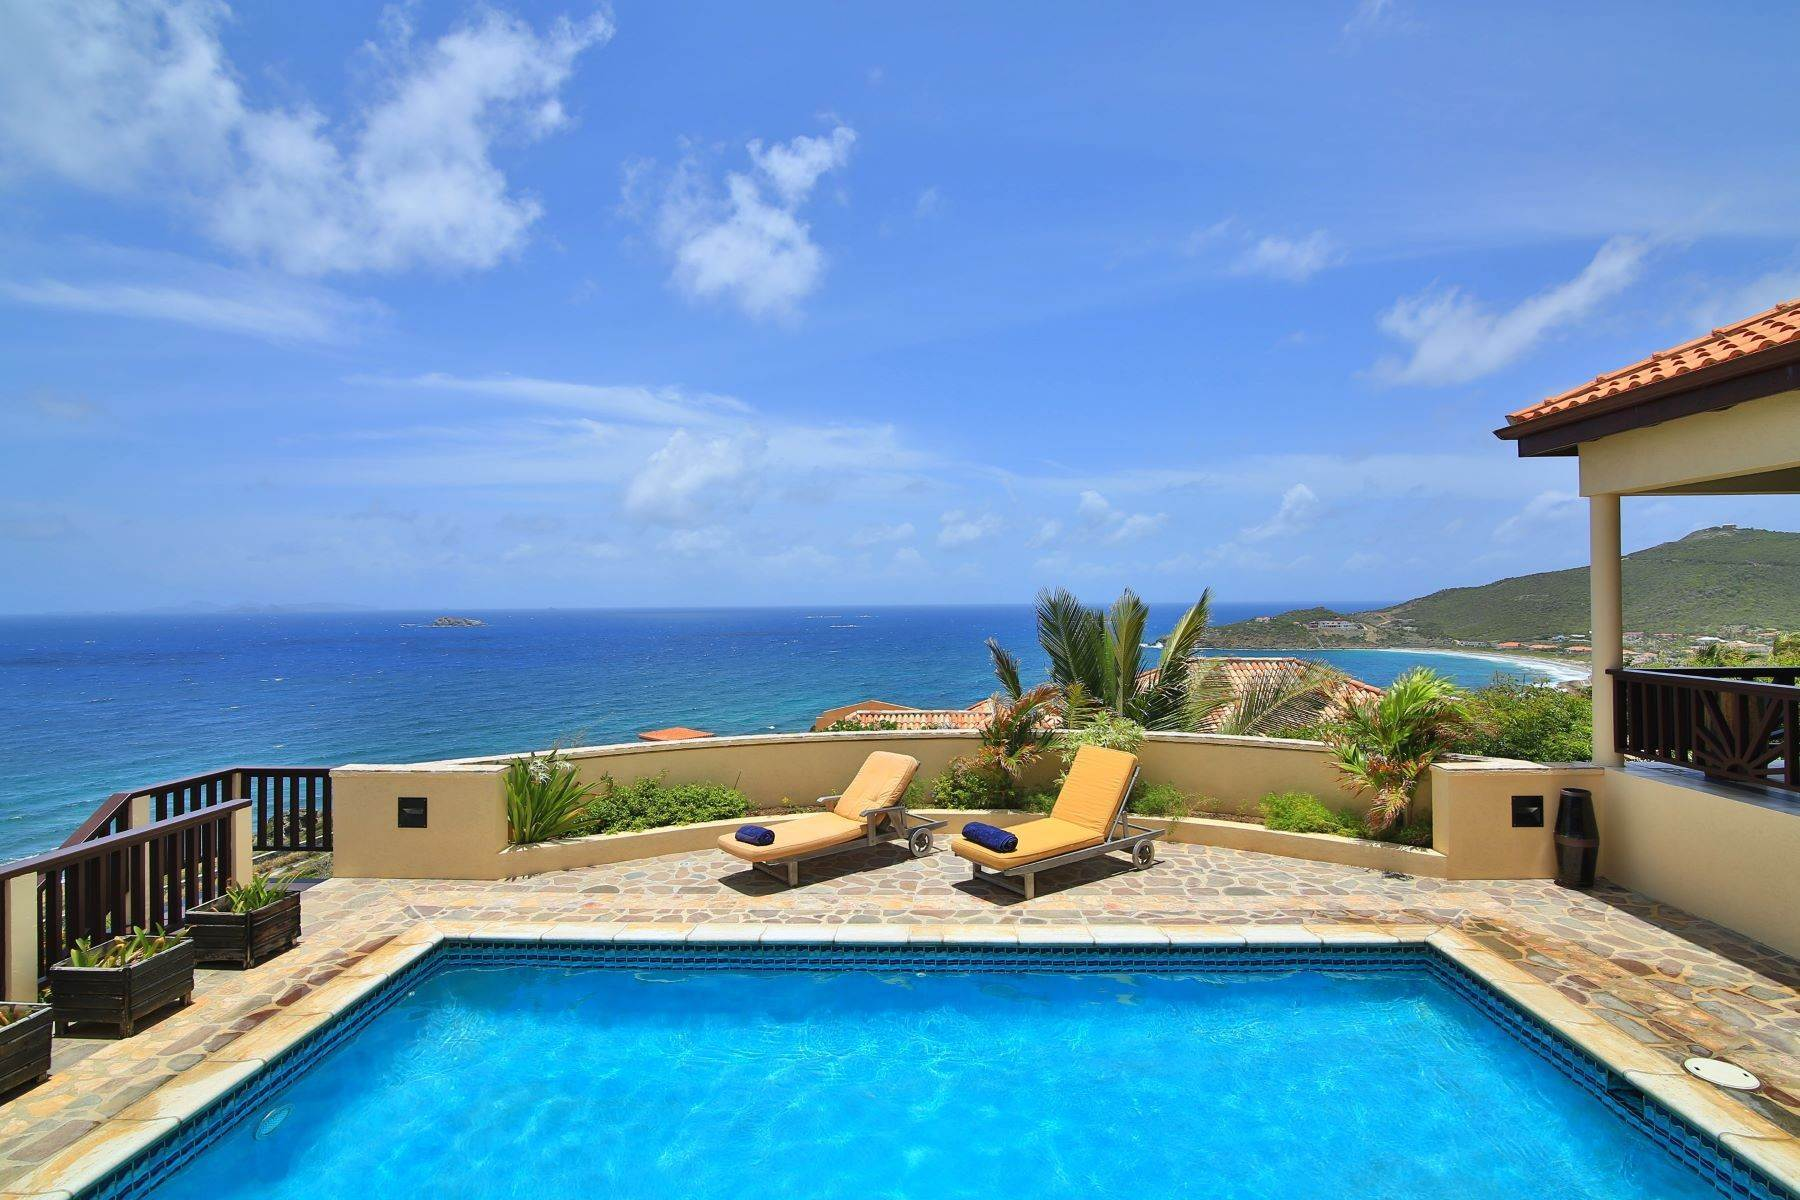 Single Family Homes for Sale at Sea Jade Tamarind Hill, St. Maarten